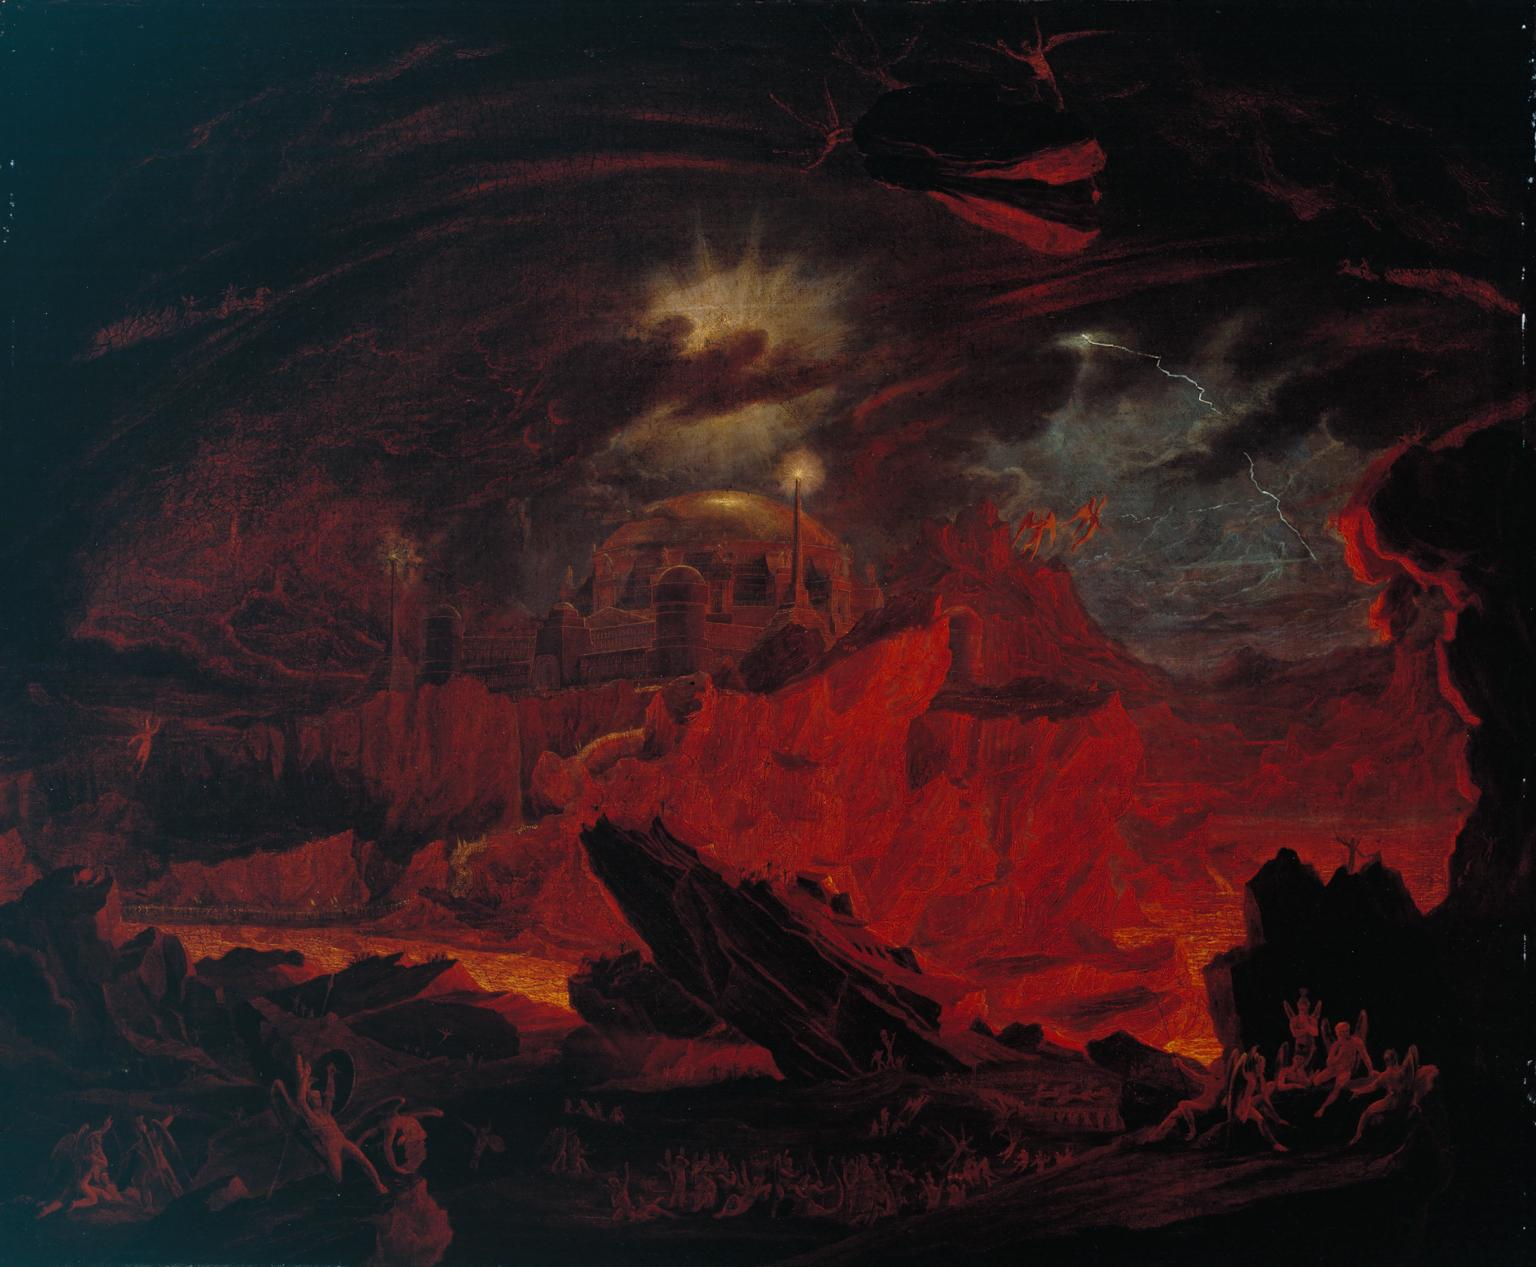 John Martin [Public domain], via Wikimedia Commons